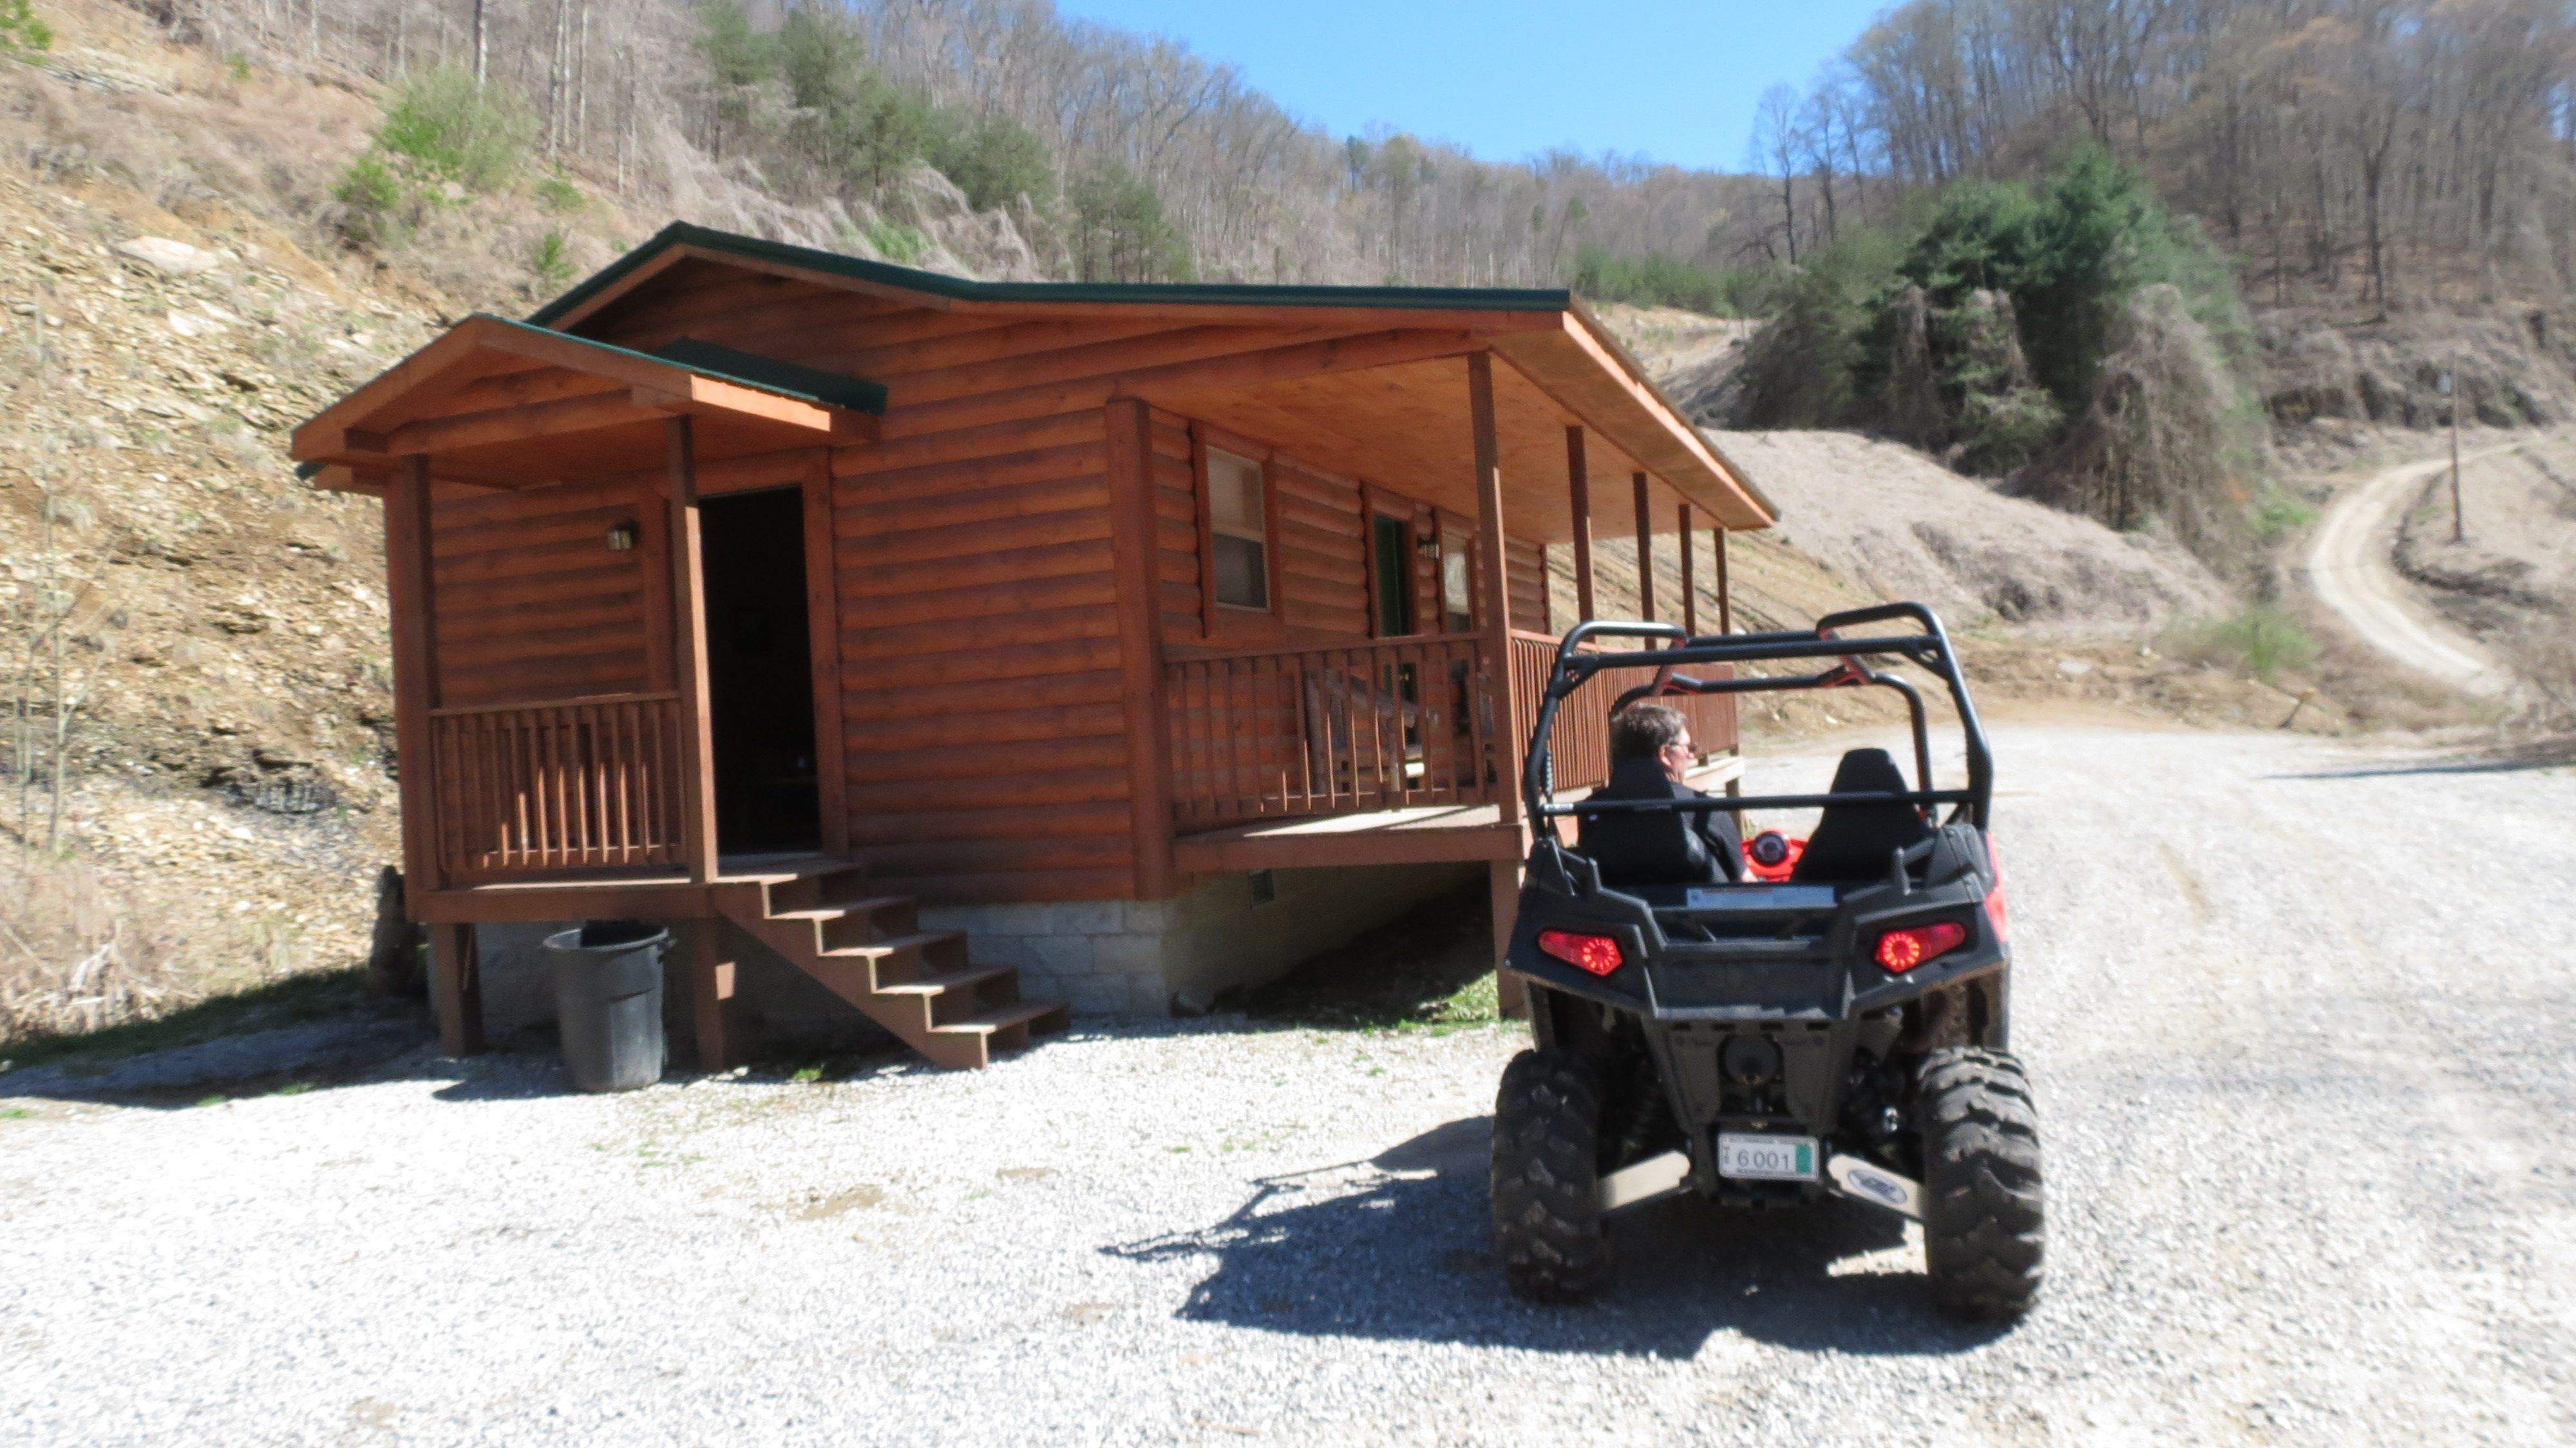 The Miners Cabin Cabin Barbeque Grill Harlan County